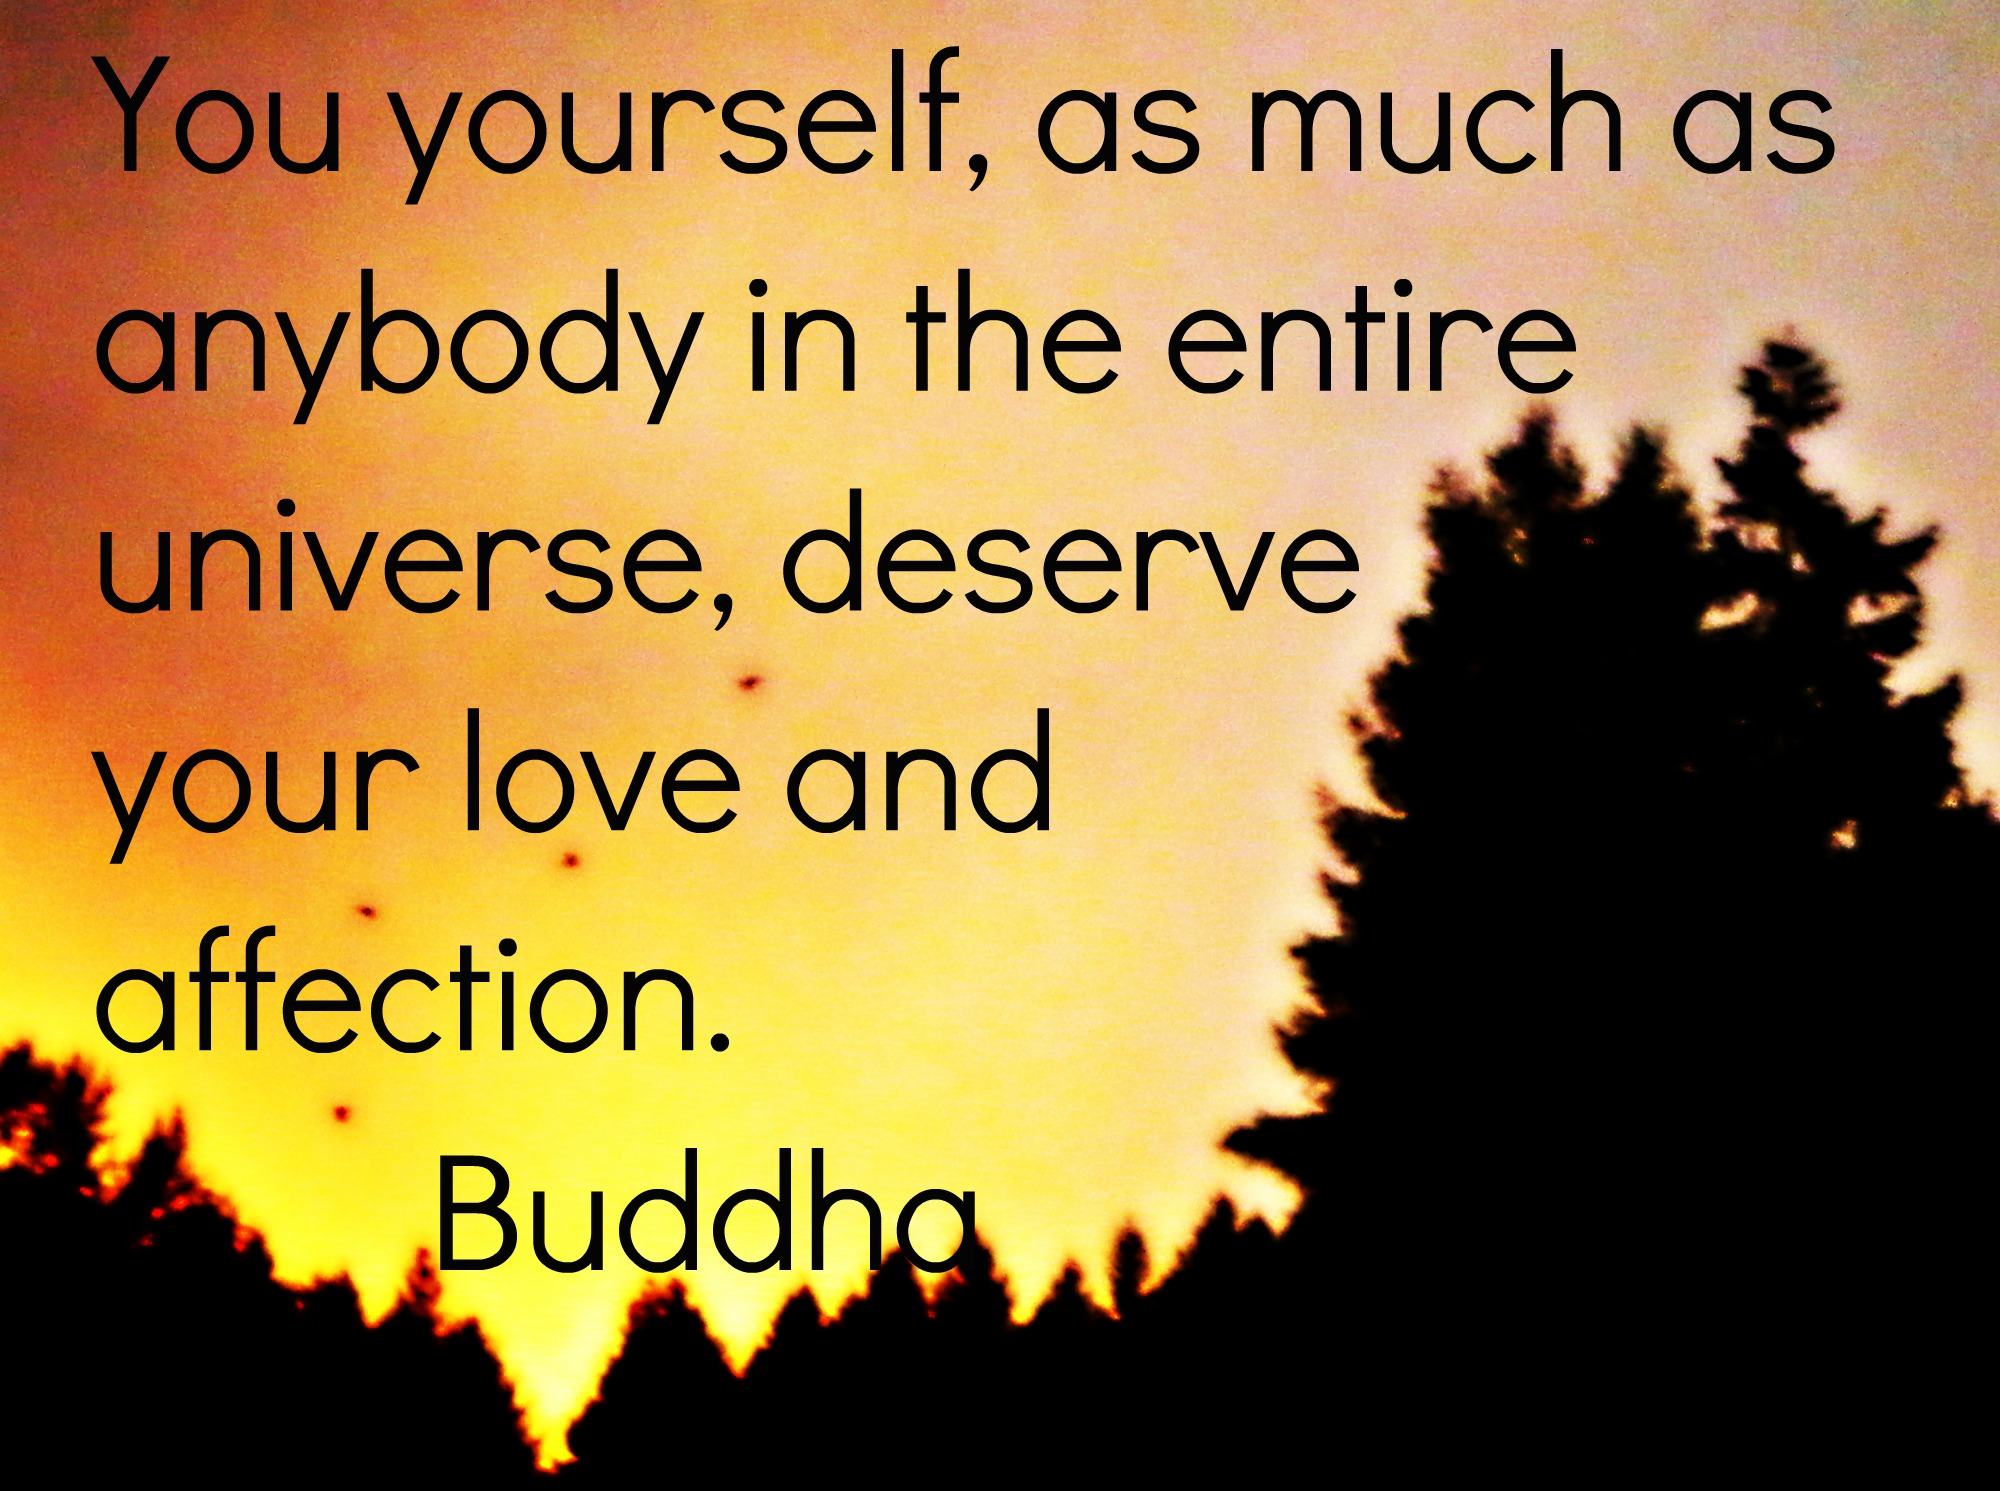 buddhism as freedom from negativity essay Outline format for initial speechgeneral purpose: to informspecific purpose: to inform the class on buddhismcentral idea: today i am going to inform you of who the.